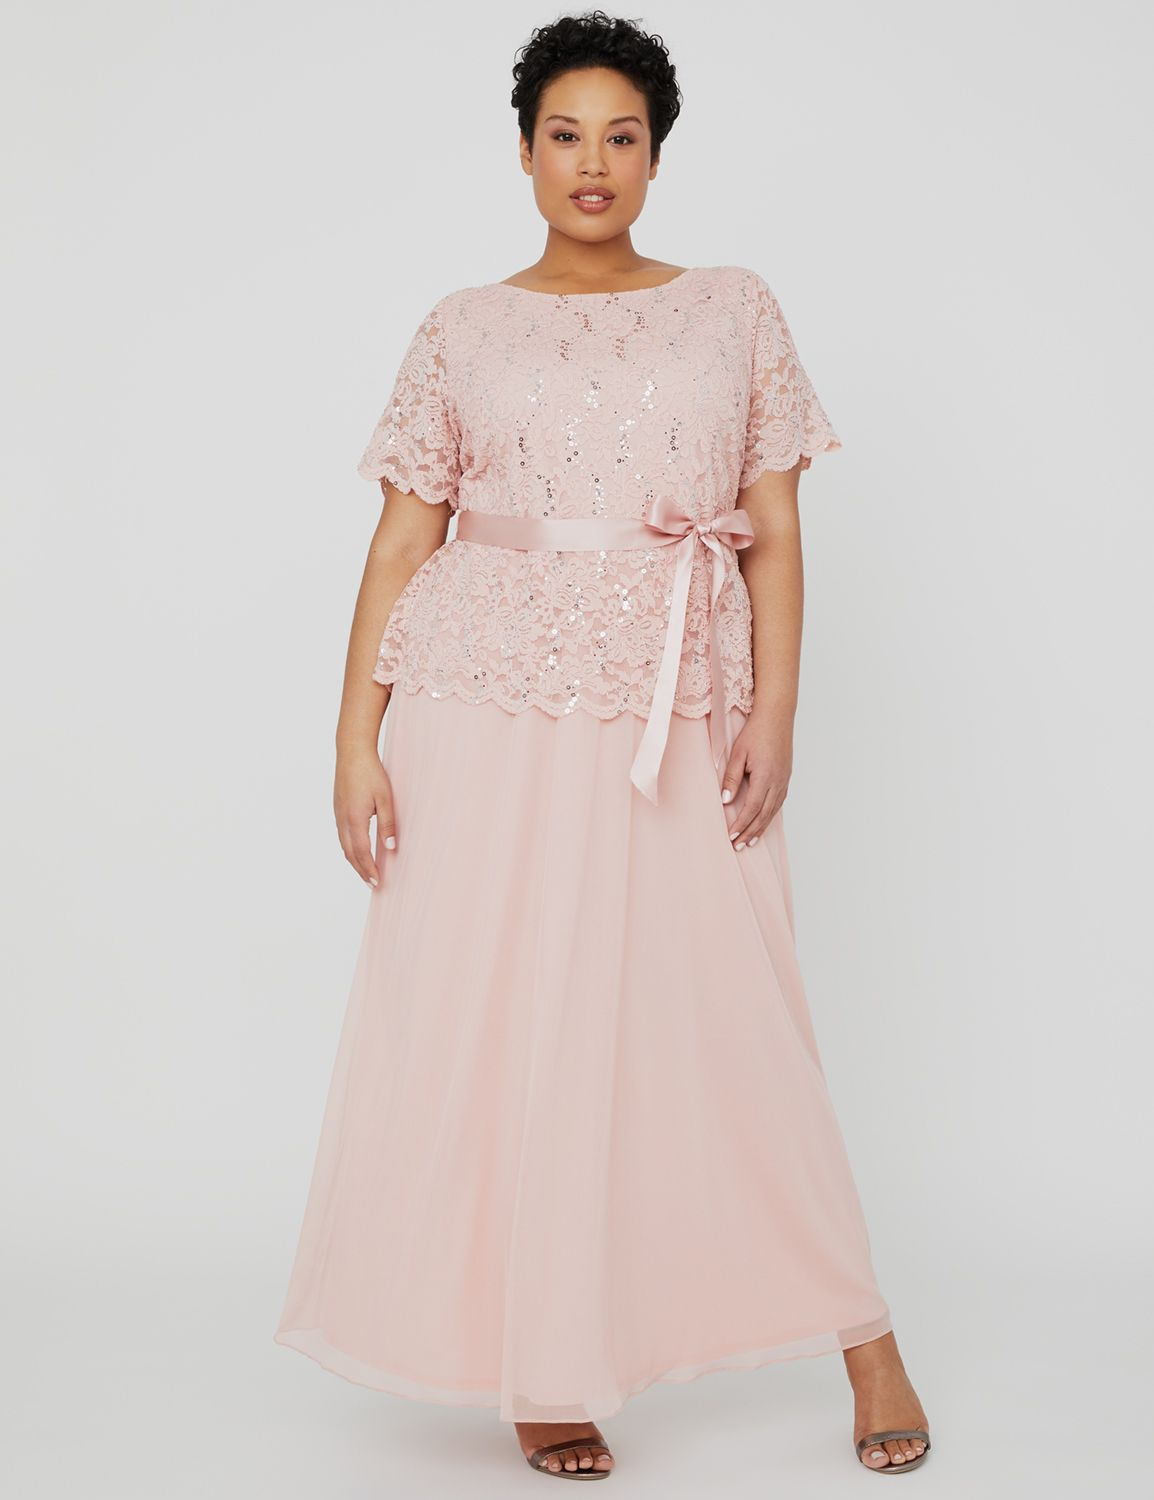 Blush Sunset Dress 1090995 Long Dress with Lace Bodice MP-300101529